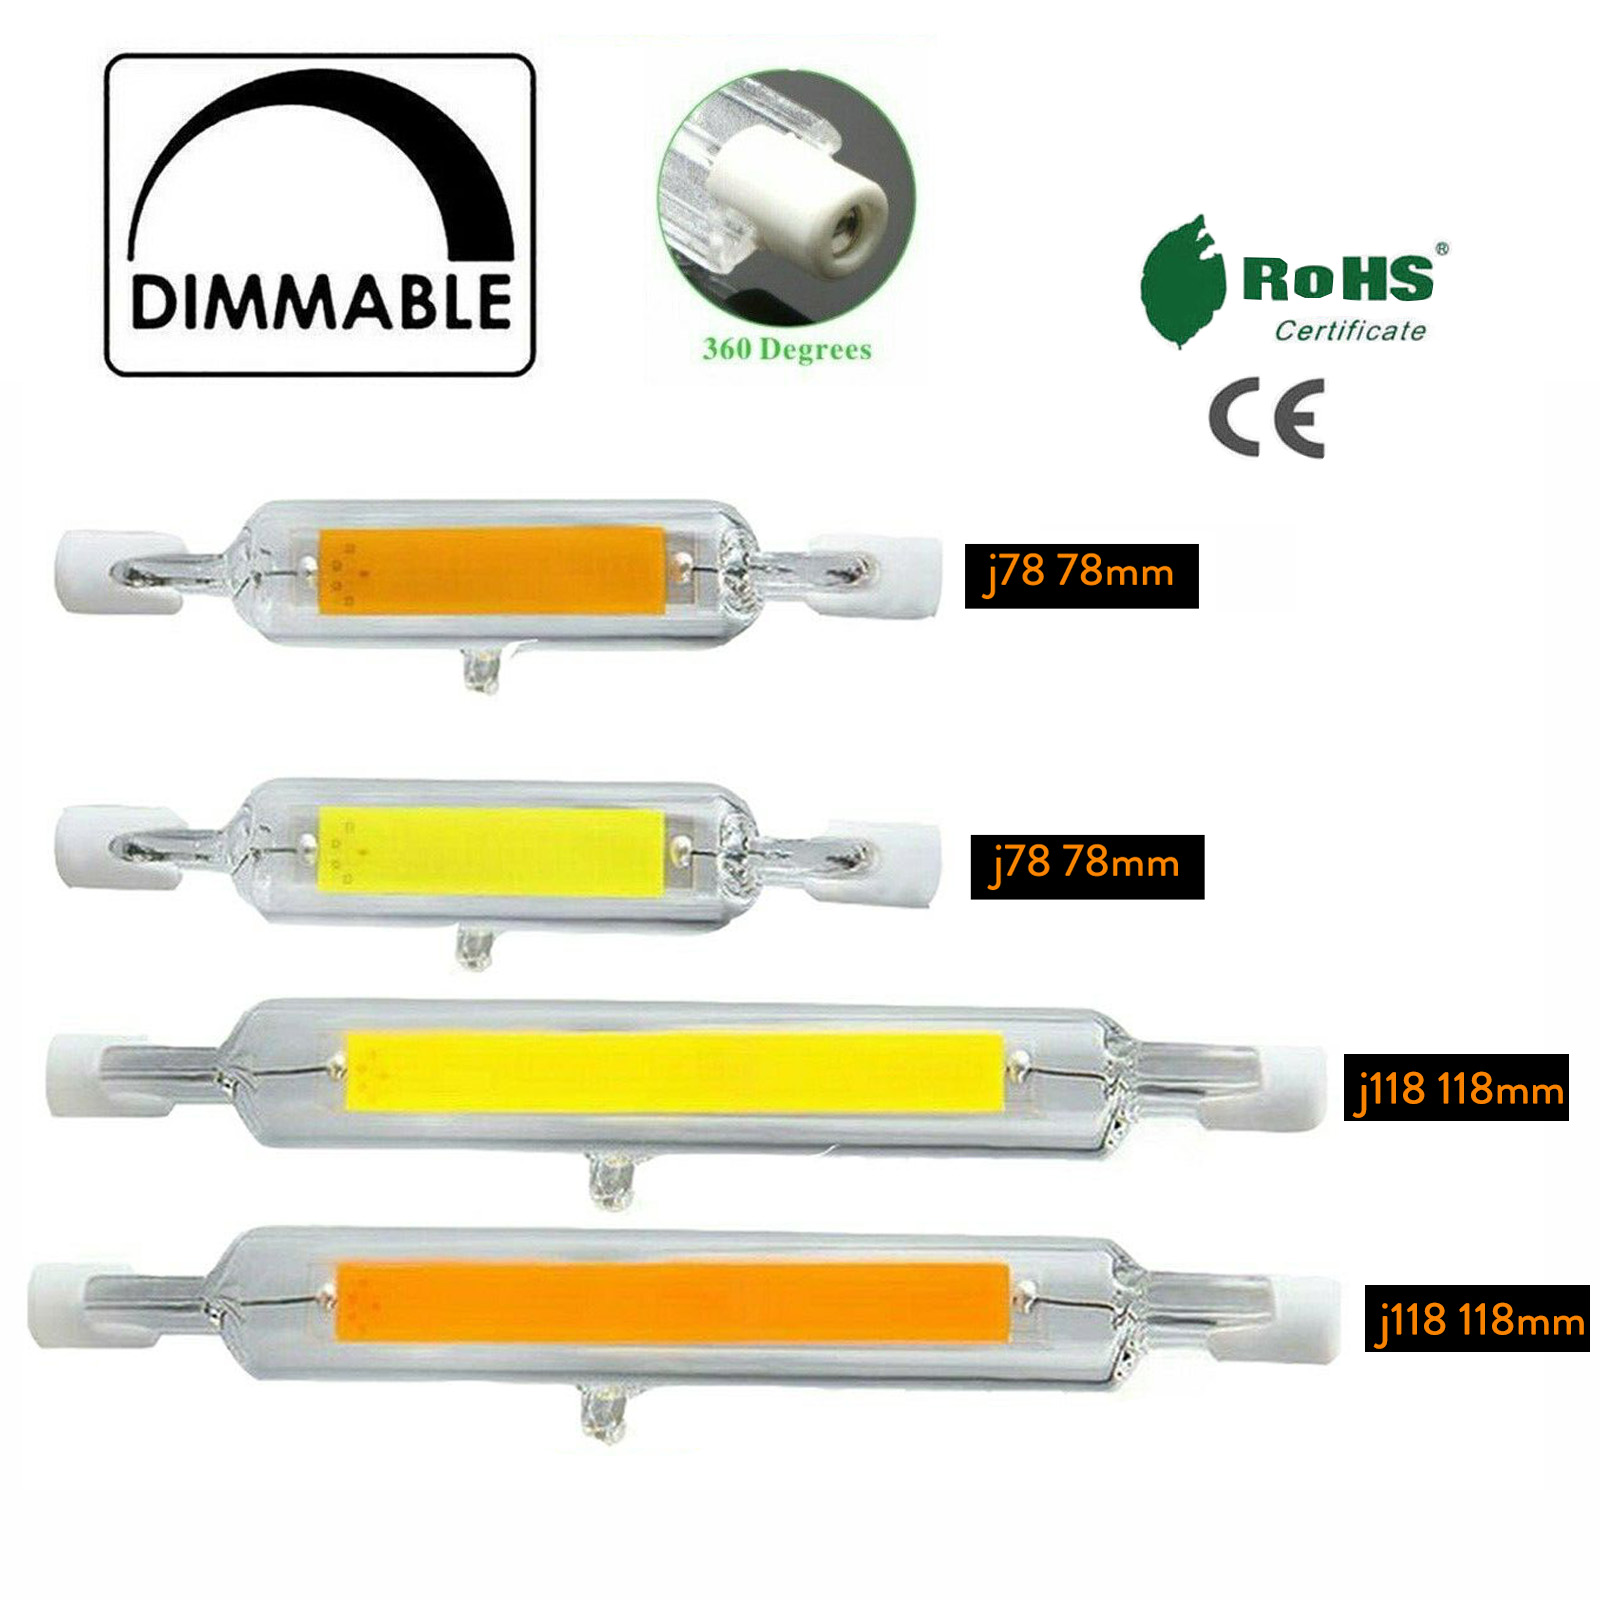 <font><b>R7s</b></font> <font><b>LED</b></font> 78mm <font><b>118mm</b></font> 7W 12W 15W 25W Dimmable COB Bulbs Ceramic Glass Tube Light Ampoule Replacement Halogen <font><b>Bombillas</b></font> Spotlight image